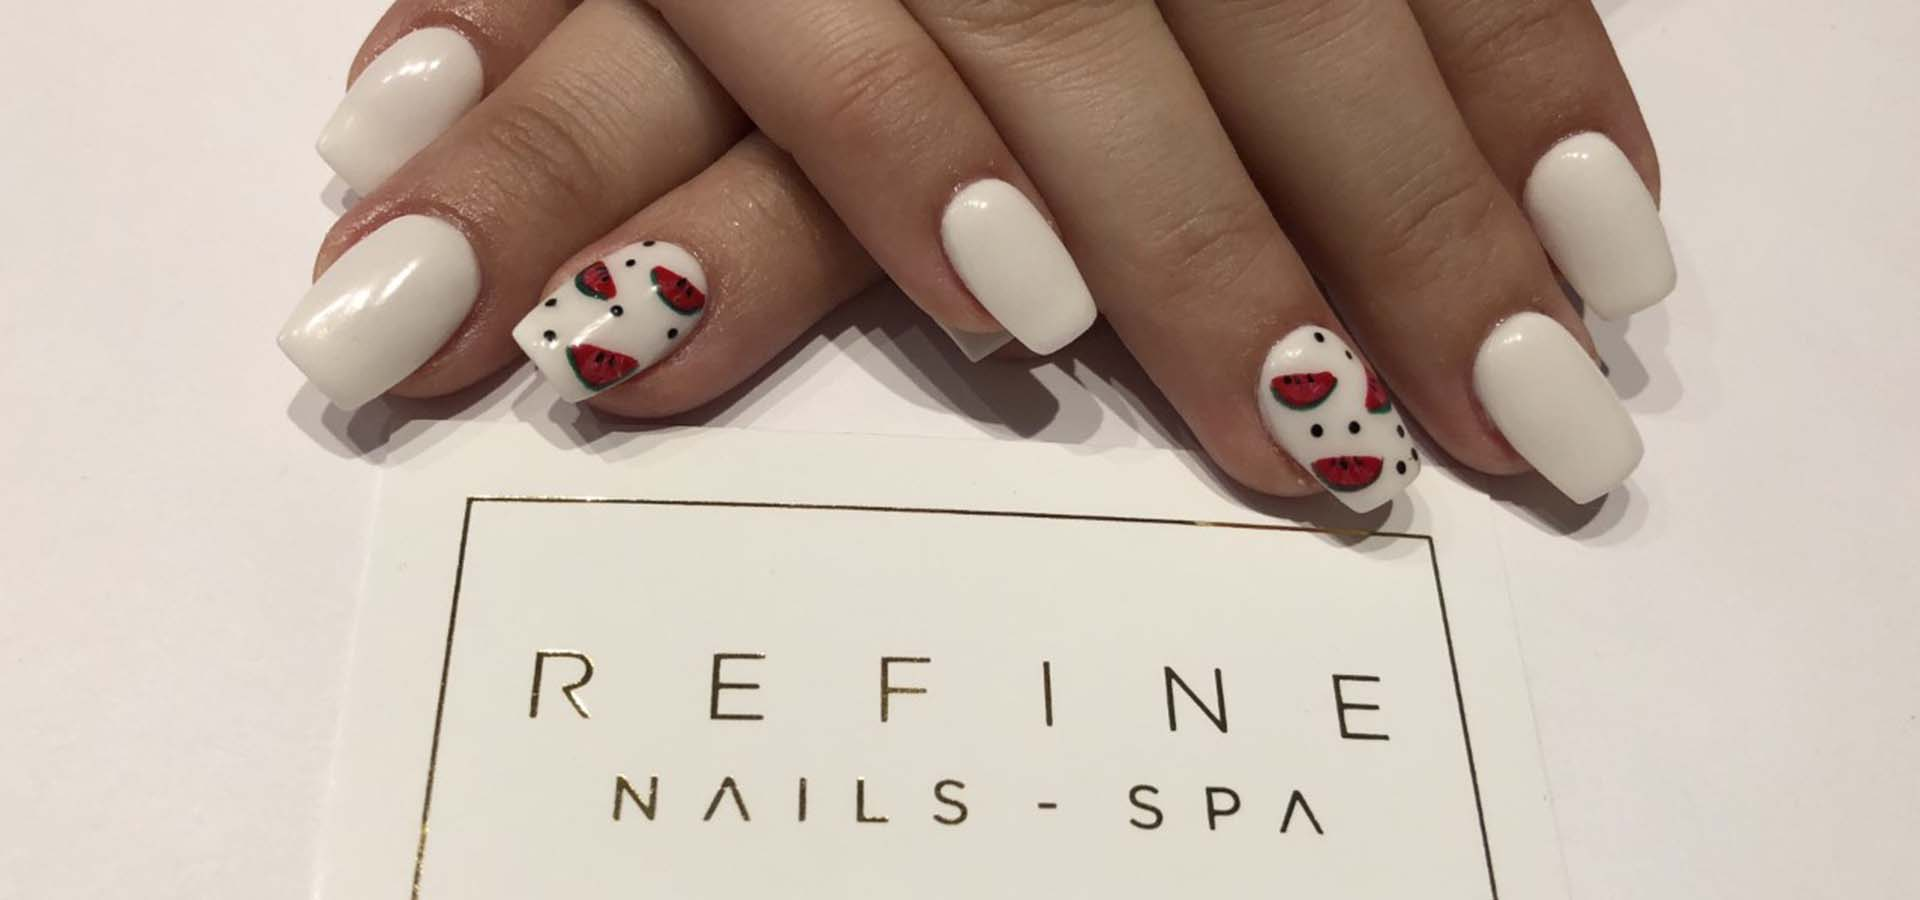 Image of nail art and Refine logo